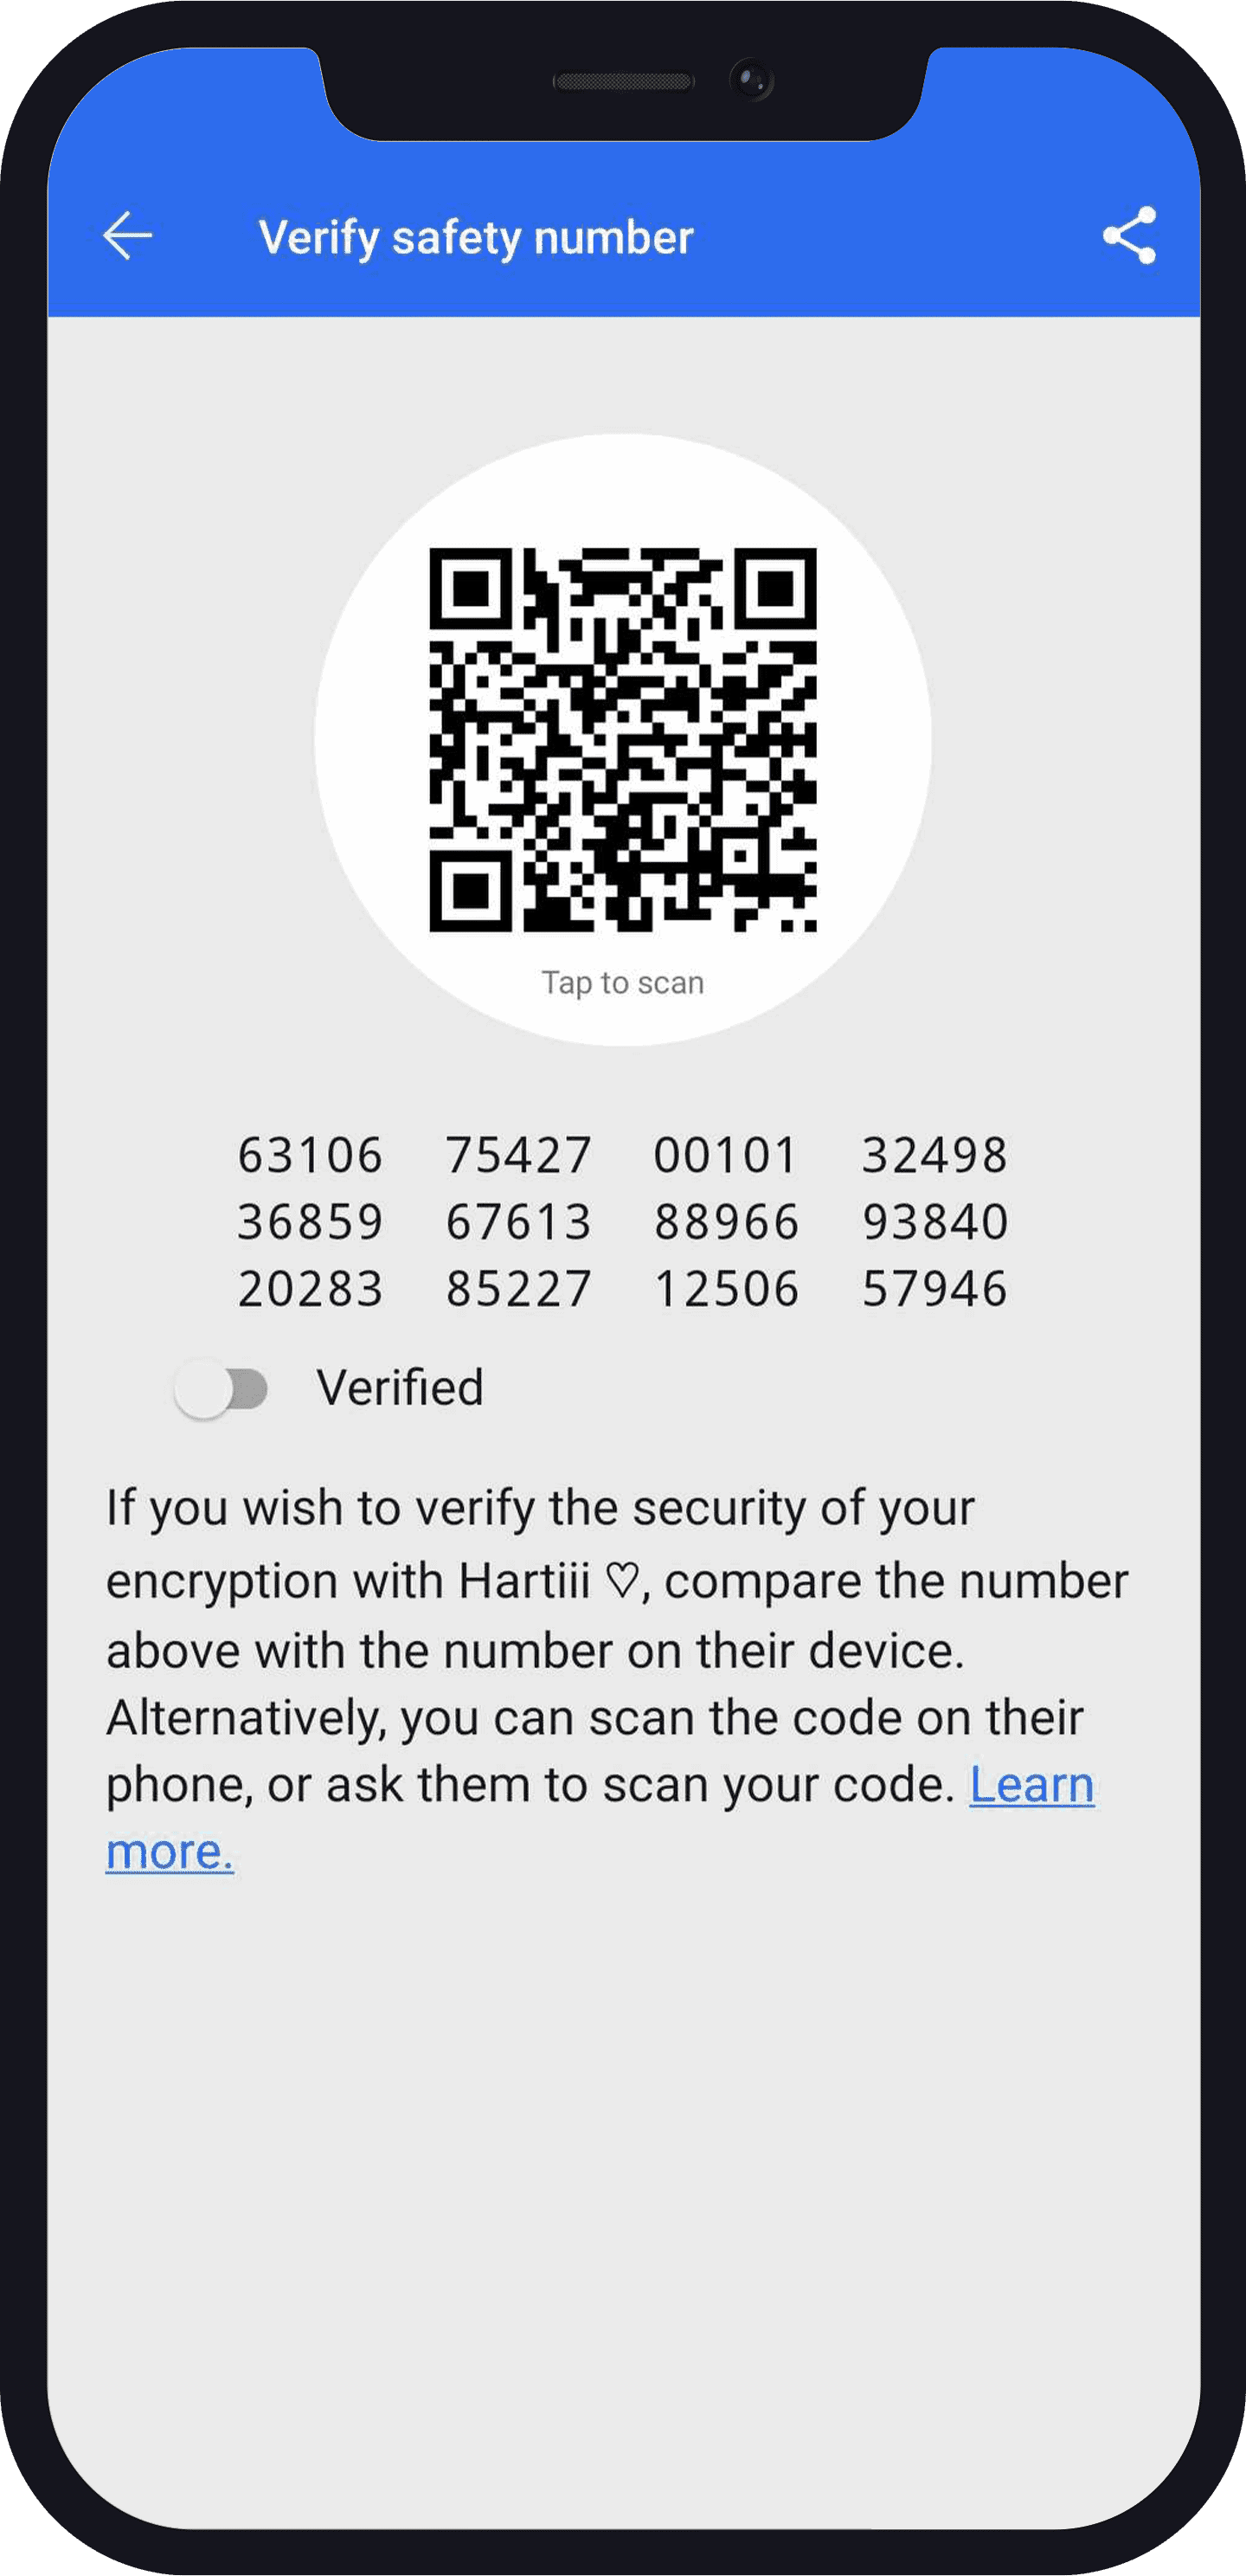 verify safety number on Signal ber